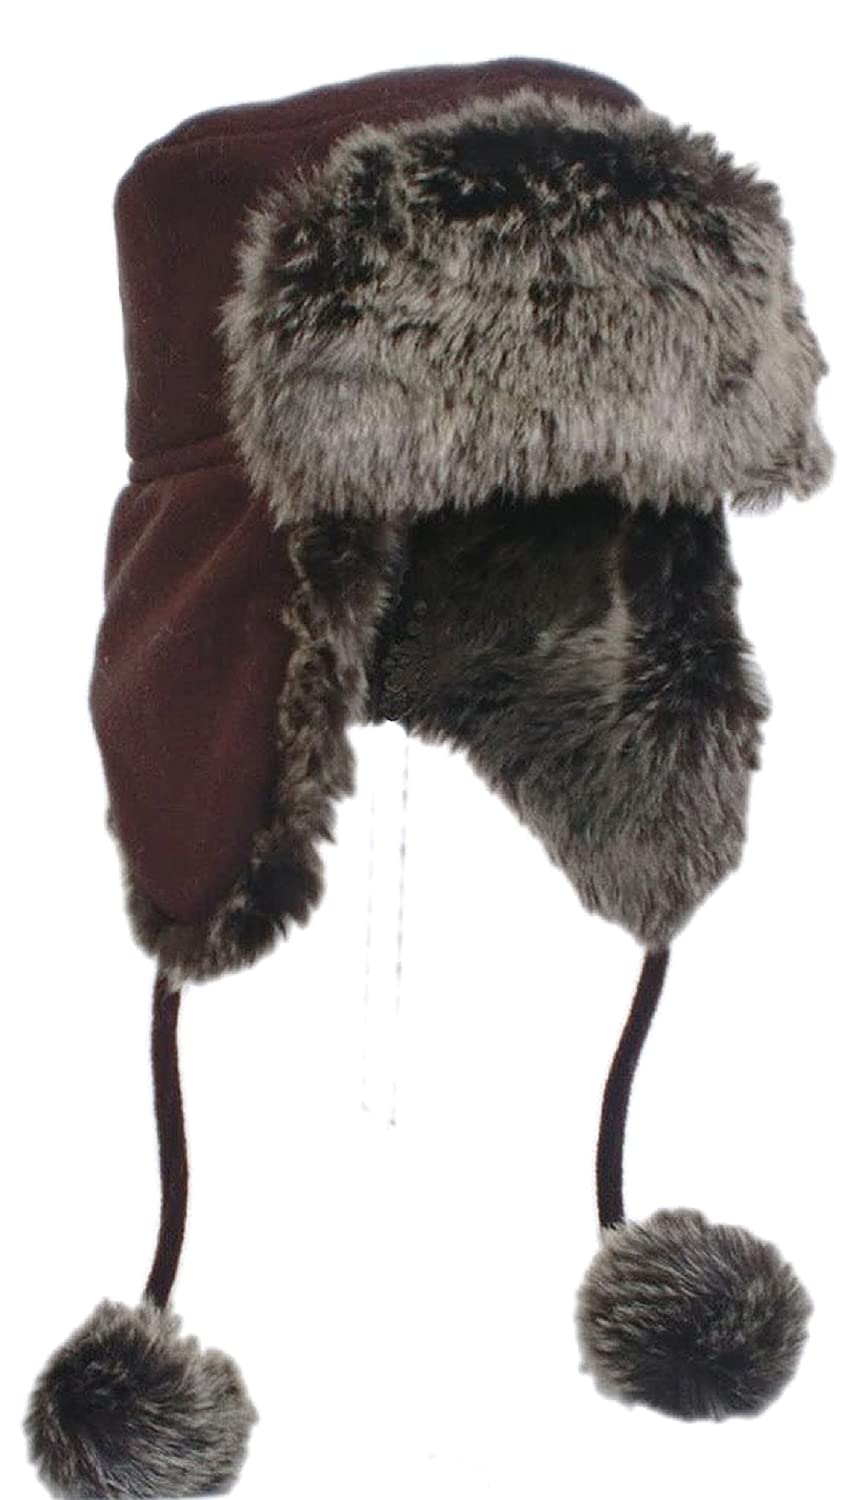 Shropshire Supplies Ladies/Girls Fully Lined Fleece Trapper Hat with Faux Fur and Pom Poms